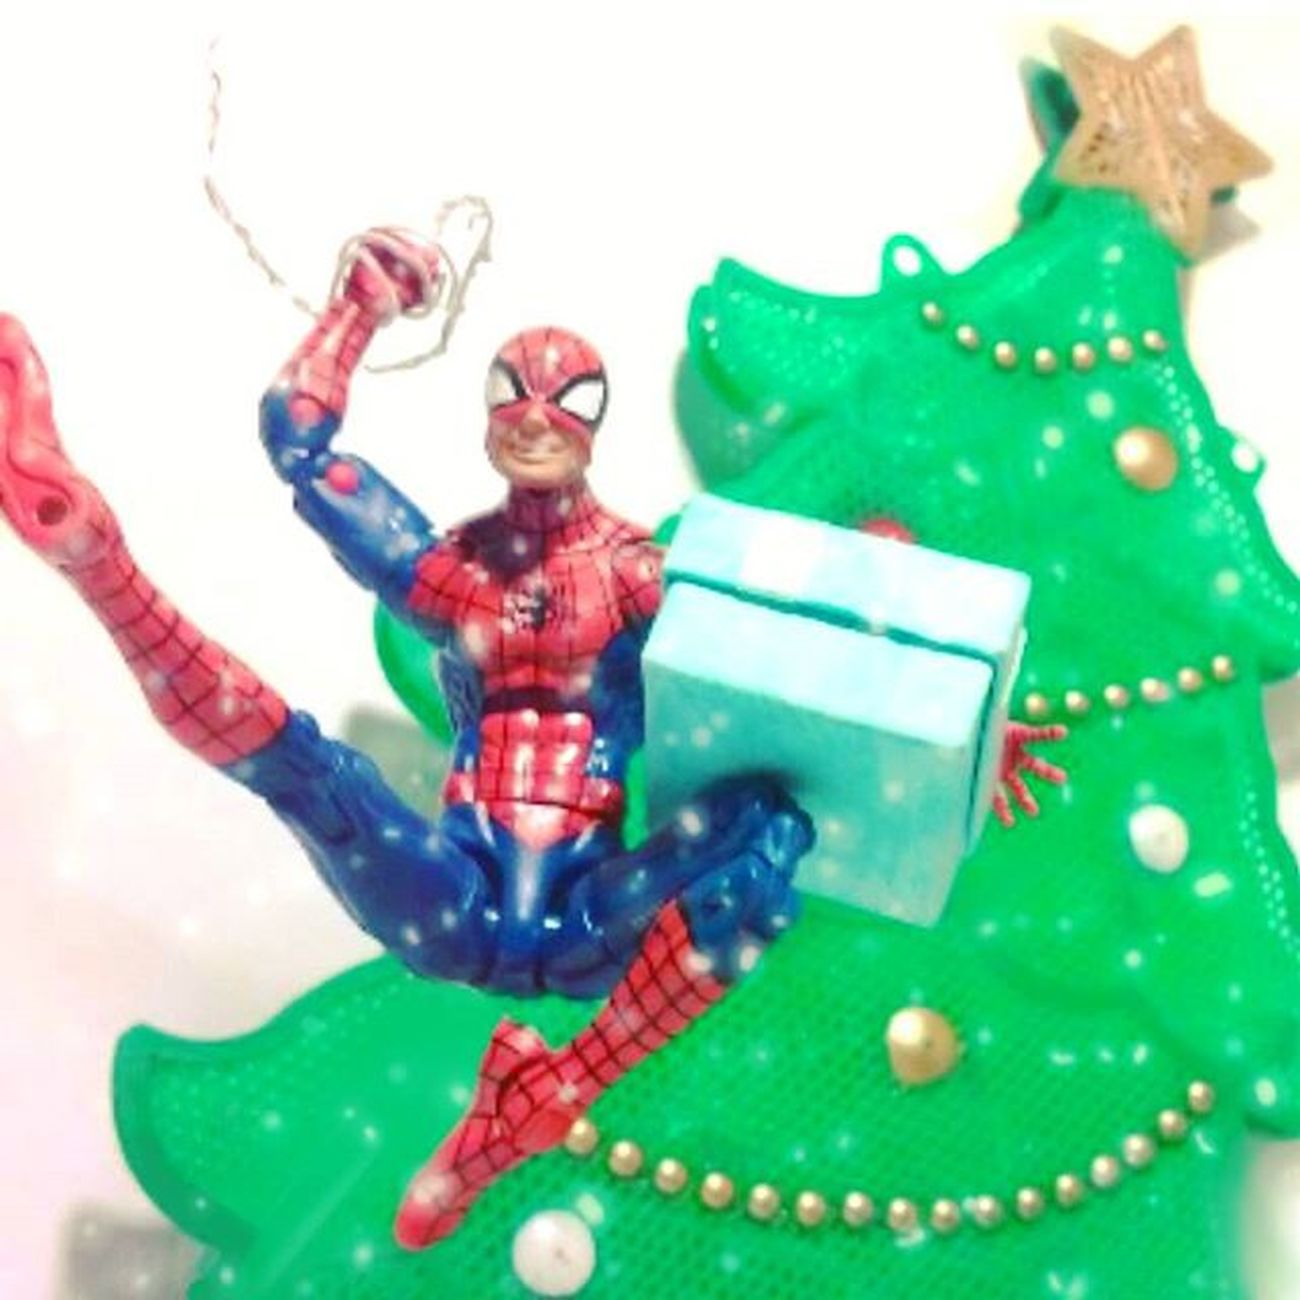 Merry Christmas everyone! Have a happy holiday and be safe!😄😄🎅🎄🎁MerryChristmas Xmas Marvellegends Amazingspiderman Spiderman Happyholidays Toyleague Toyelites Articulatedcomicbookart Actionfigurephotography ACBA Toyphotogallery Toyphotogram Toyuniverse Toyunion Toycrewbuddies Toyplanet Toybornes Ata_dreadnoughts Toyartistry_elite Toyaremydrugs Toysarehellasick Toystagram Toyslagram Anarchyalliance rebeltoysclub toyrevolution toycommunity epictoyart actionfigures